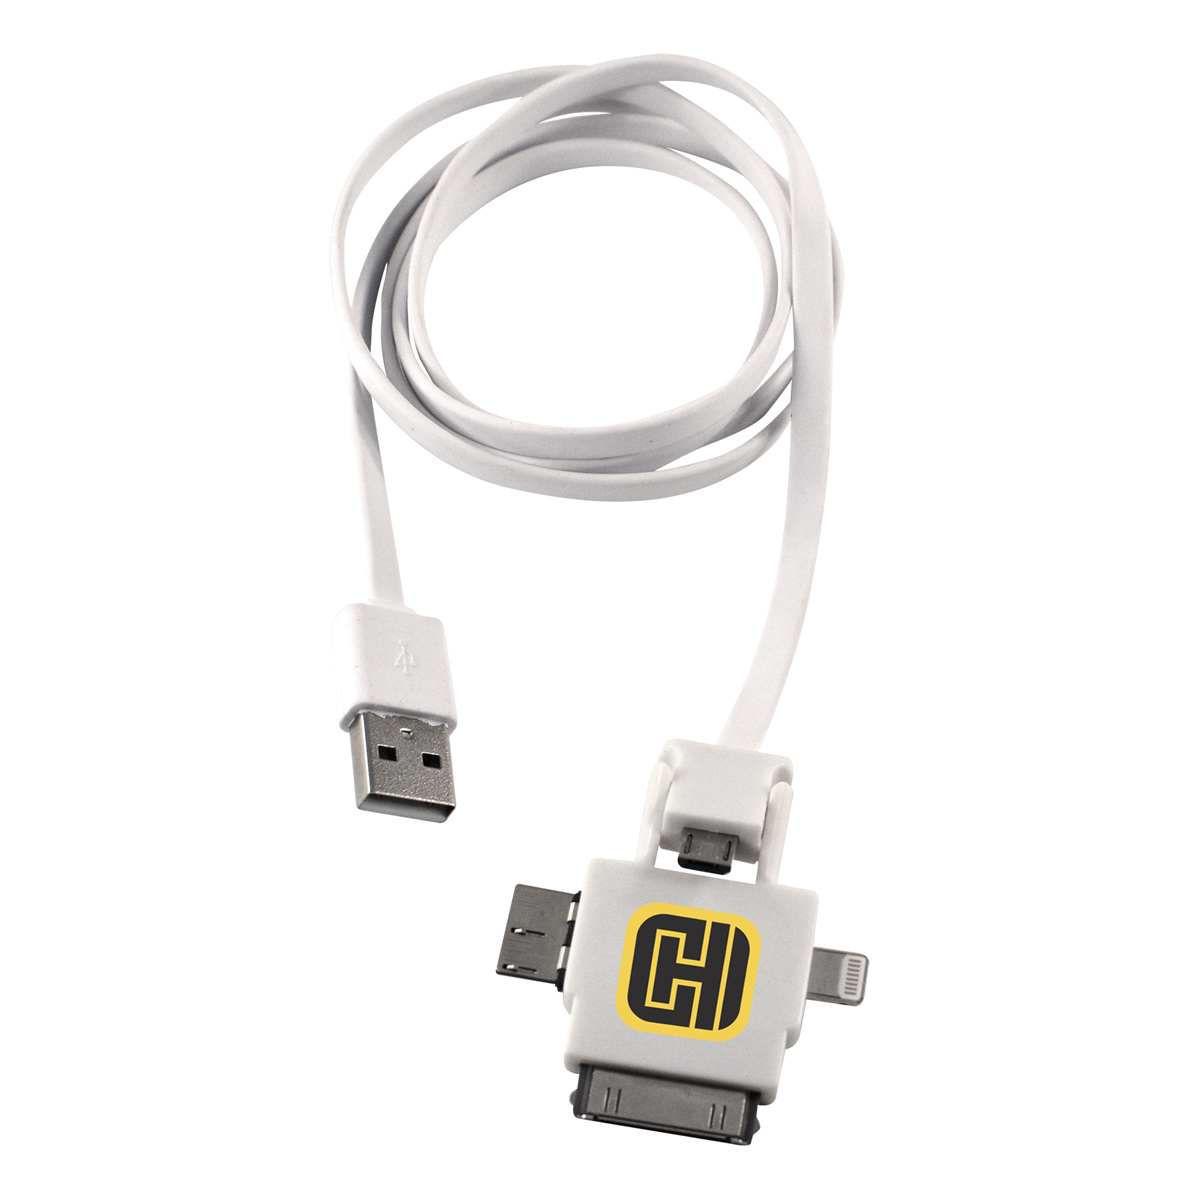 e0663addb6113a Promotional Express 4 in 1 Charger Cables: Branded Online ...